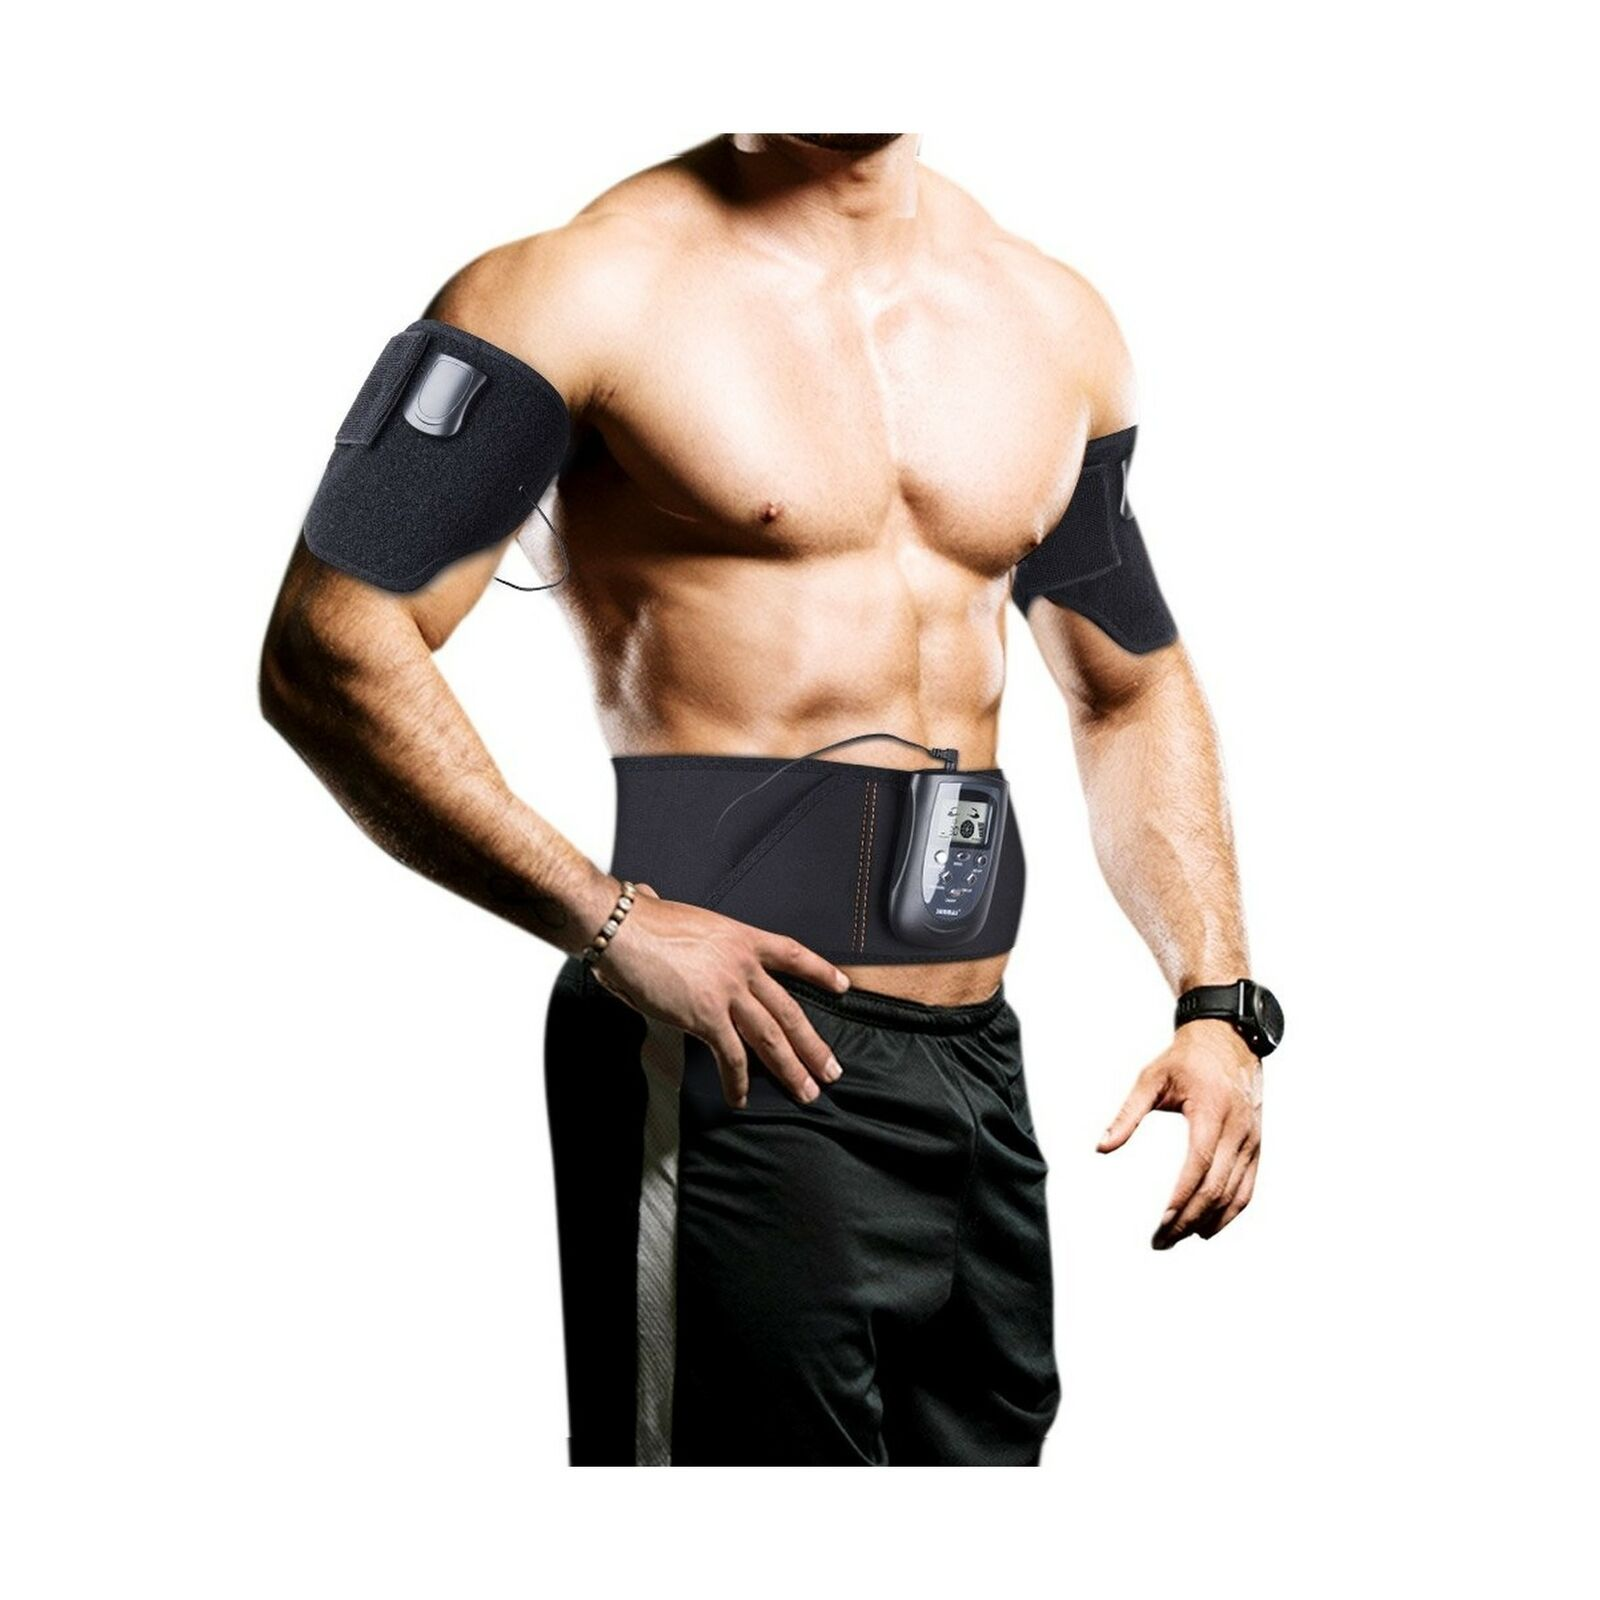 SUNMAS Electric Ab Belt for donna and Men  Effective Muscle Stimulator and T...